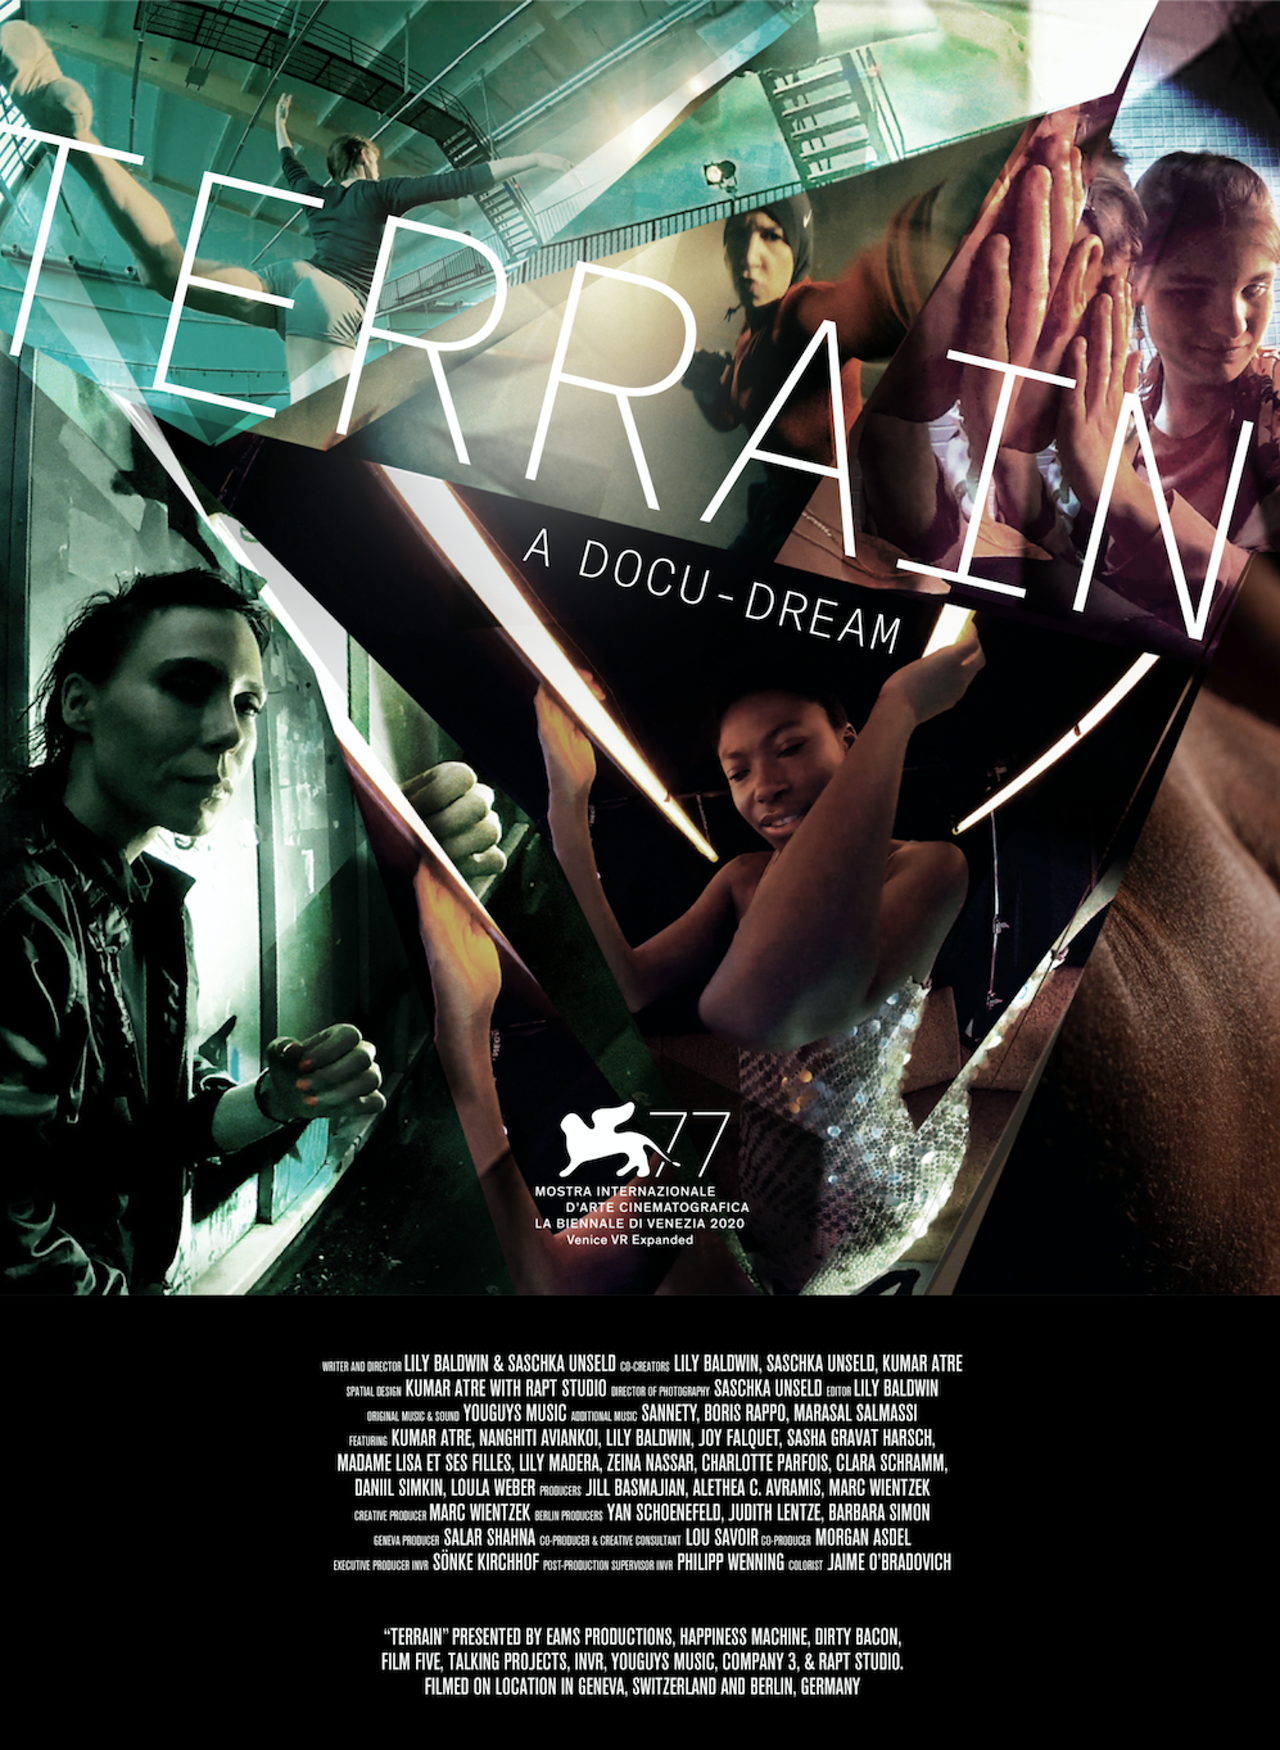 Terrain has its world premiere at Venice Biennale's Venice Film Festival.